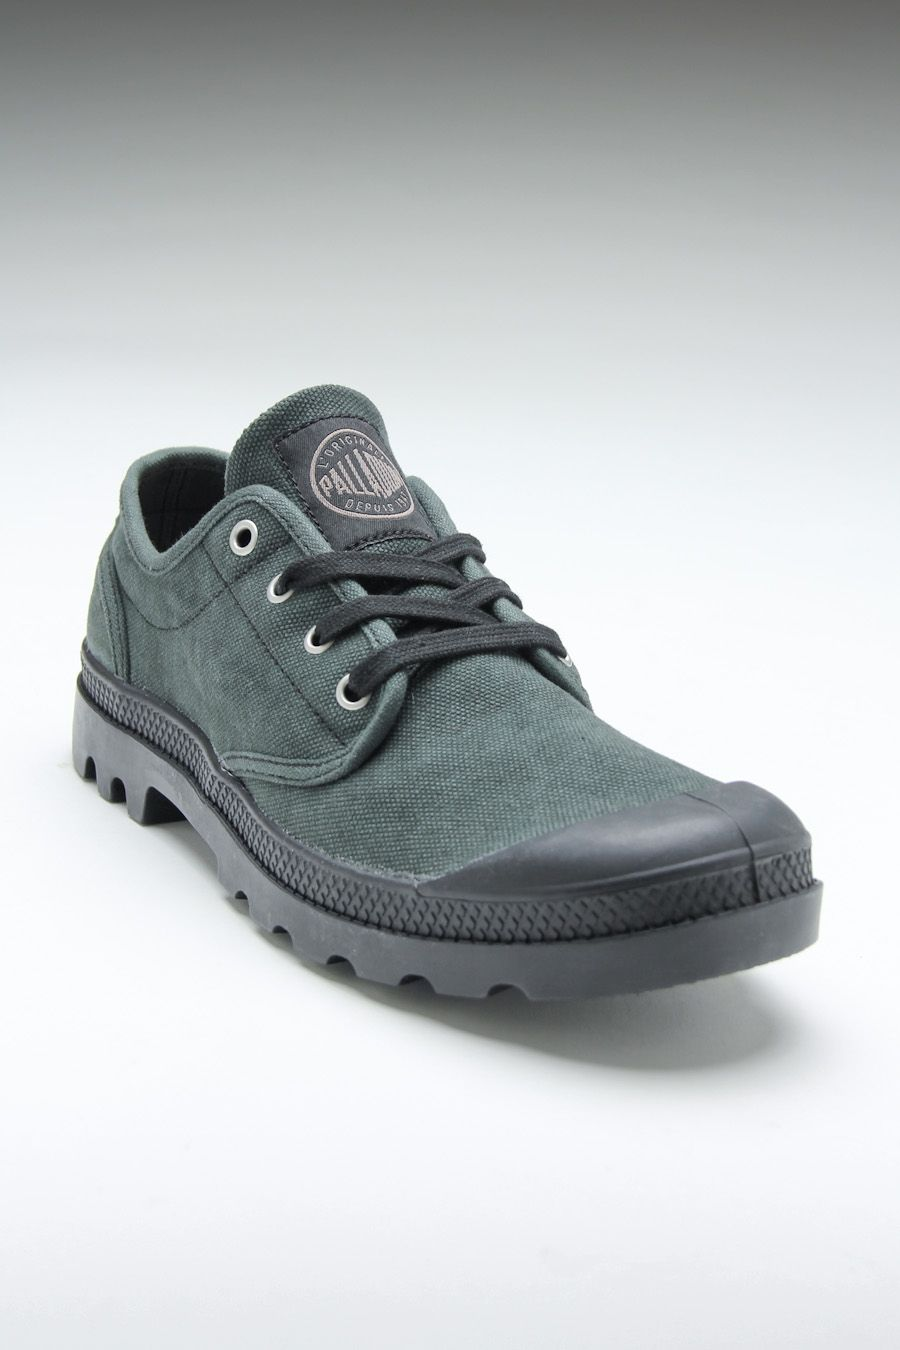 22908c42453e Palladium Pampa Oxford Stonewashed Black